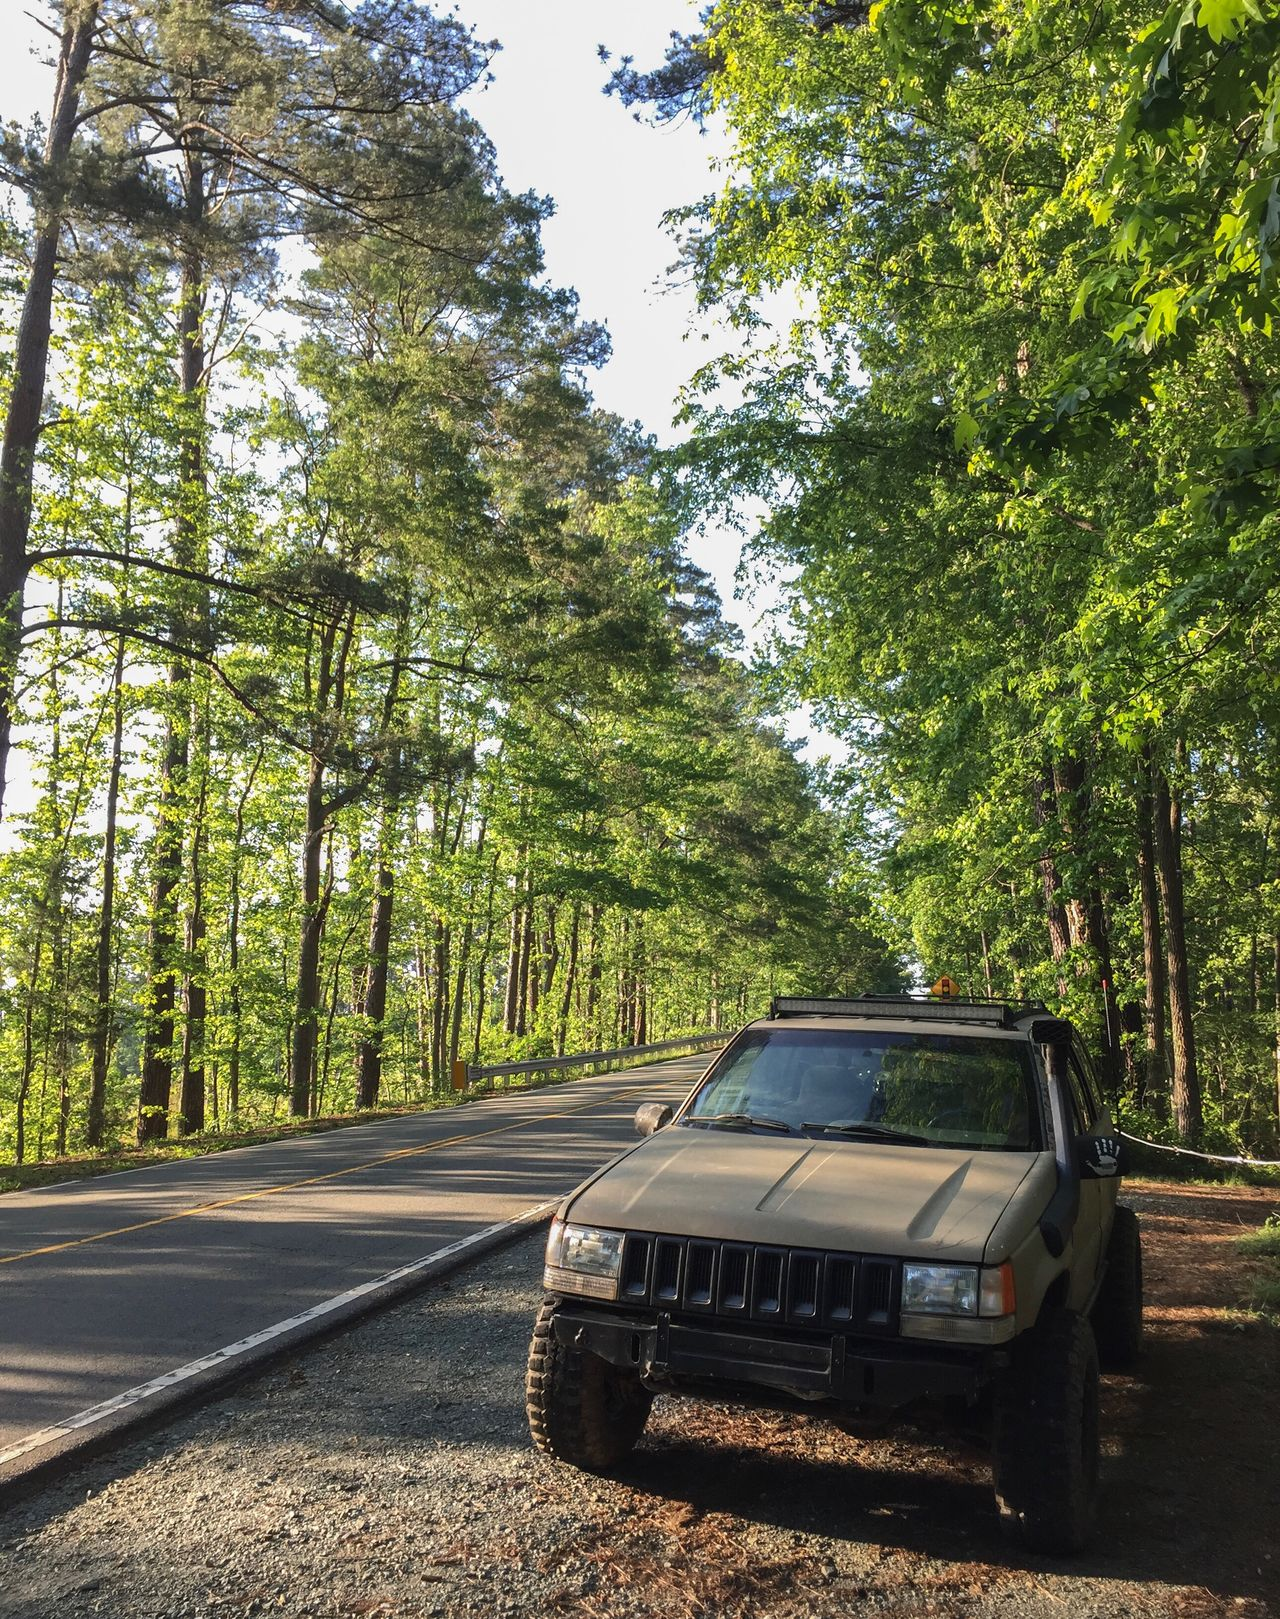 Jeep Jeeplife Tree Car Transportation Road Forest Land Vehicle Day Mode Of Transport Nature Green Color No People Outdoors Growth Trees Offroad Offroad Adventure The Great Outdoors - 2017 EyeEm Awards